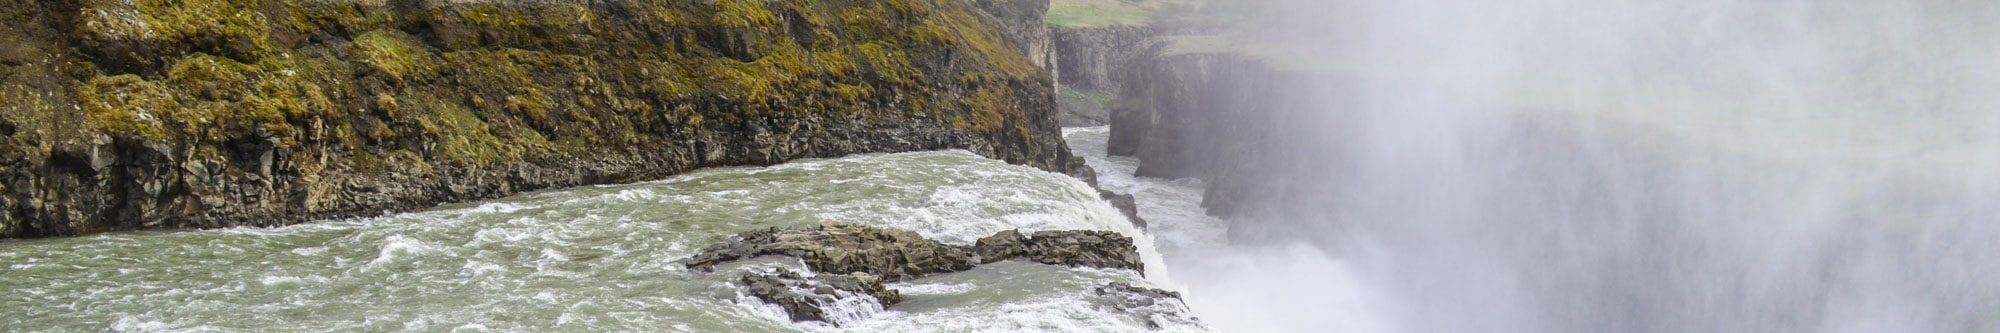 Gullfoss Waterfall banner